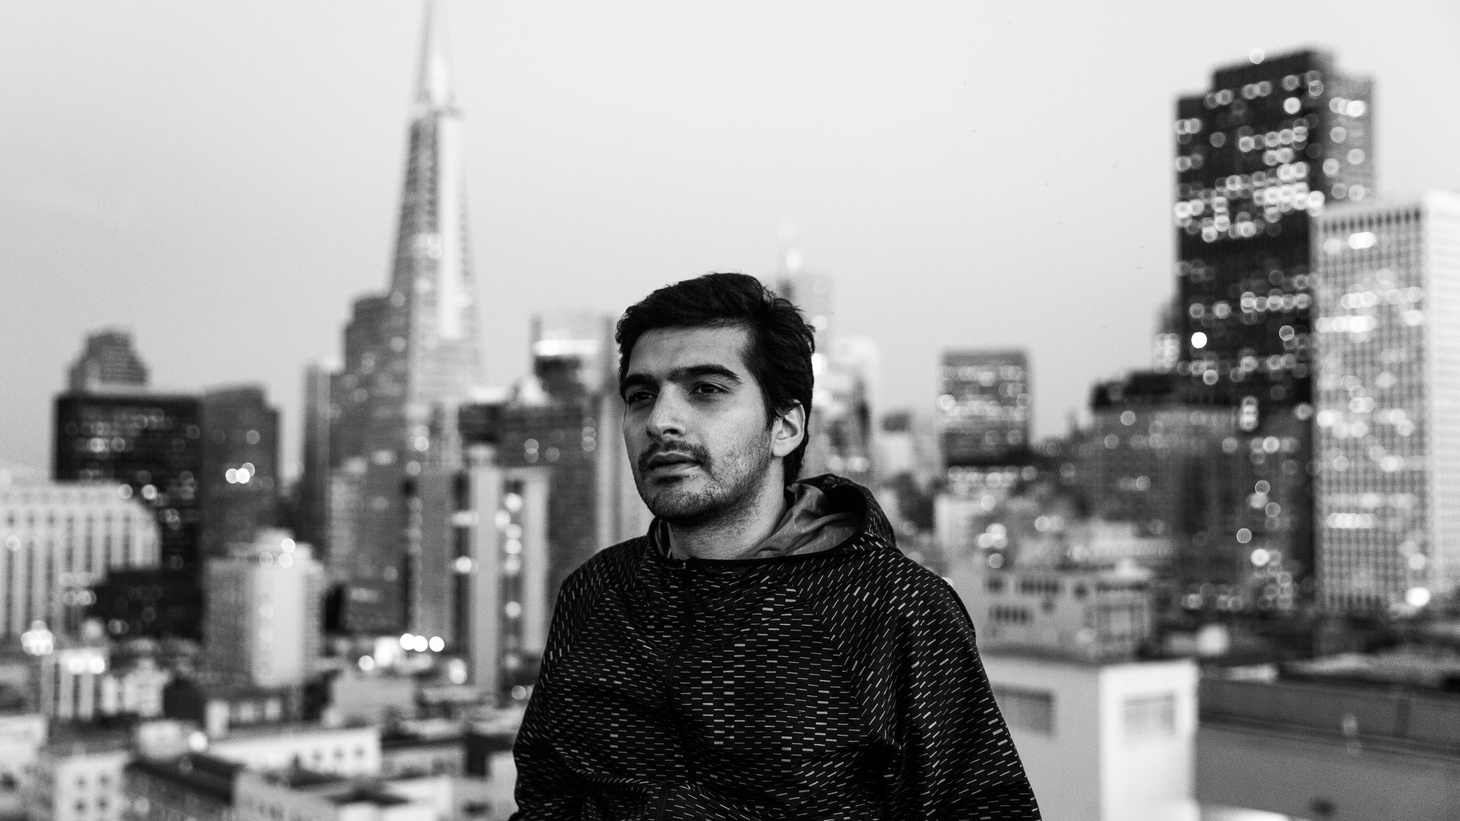 Iran born and SF-based DJ/producer Ardalan has been carving out his reputation in the electronic scene. Known for their energy, sass, and wickedly wry samples, his mixes and remixes always offer a fresh perspective to the eager ear.